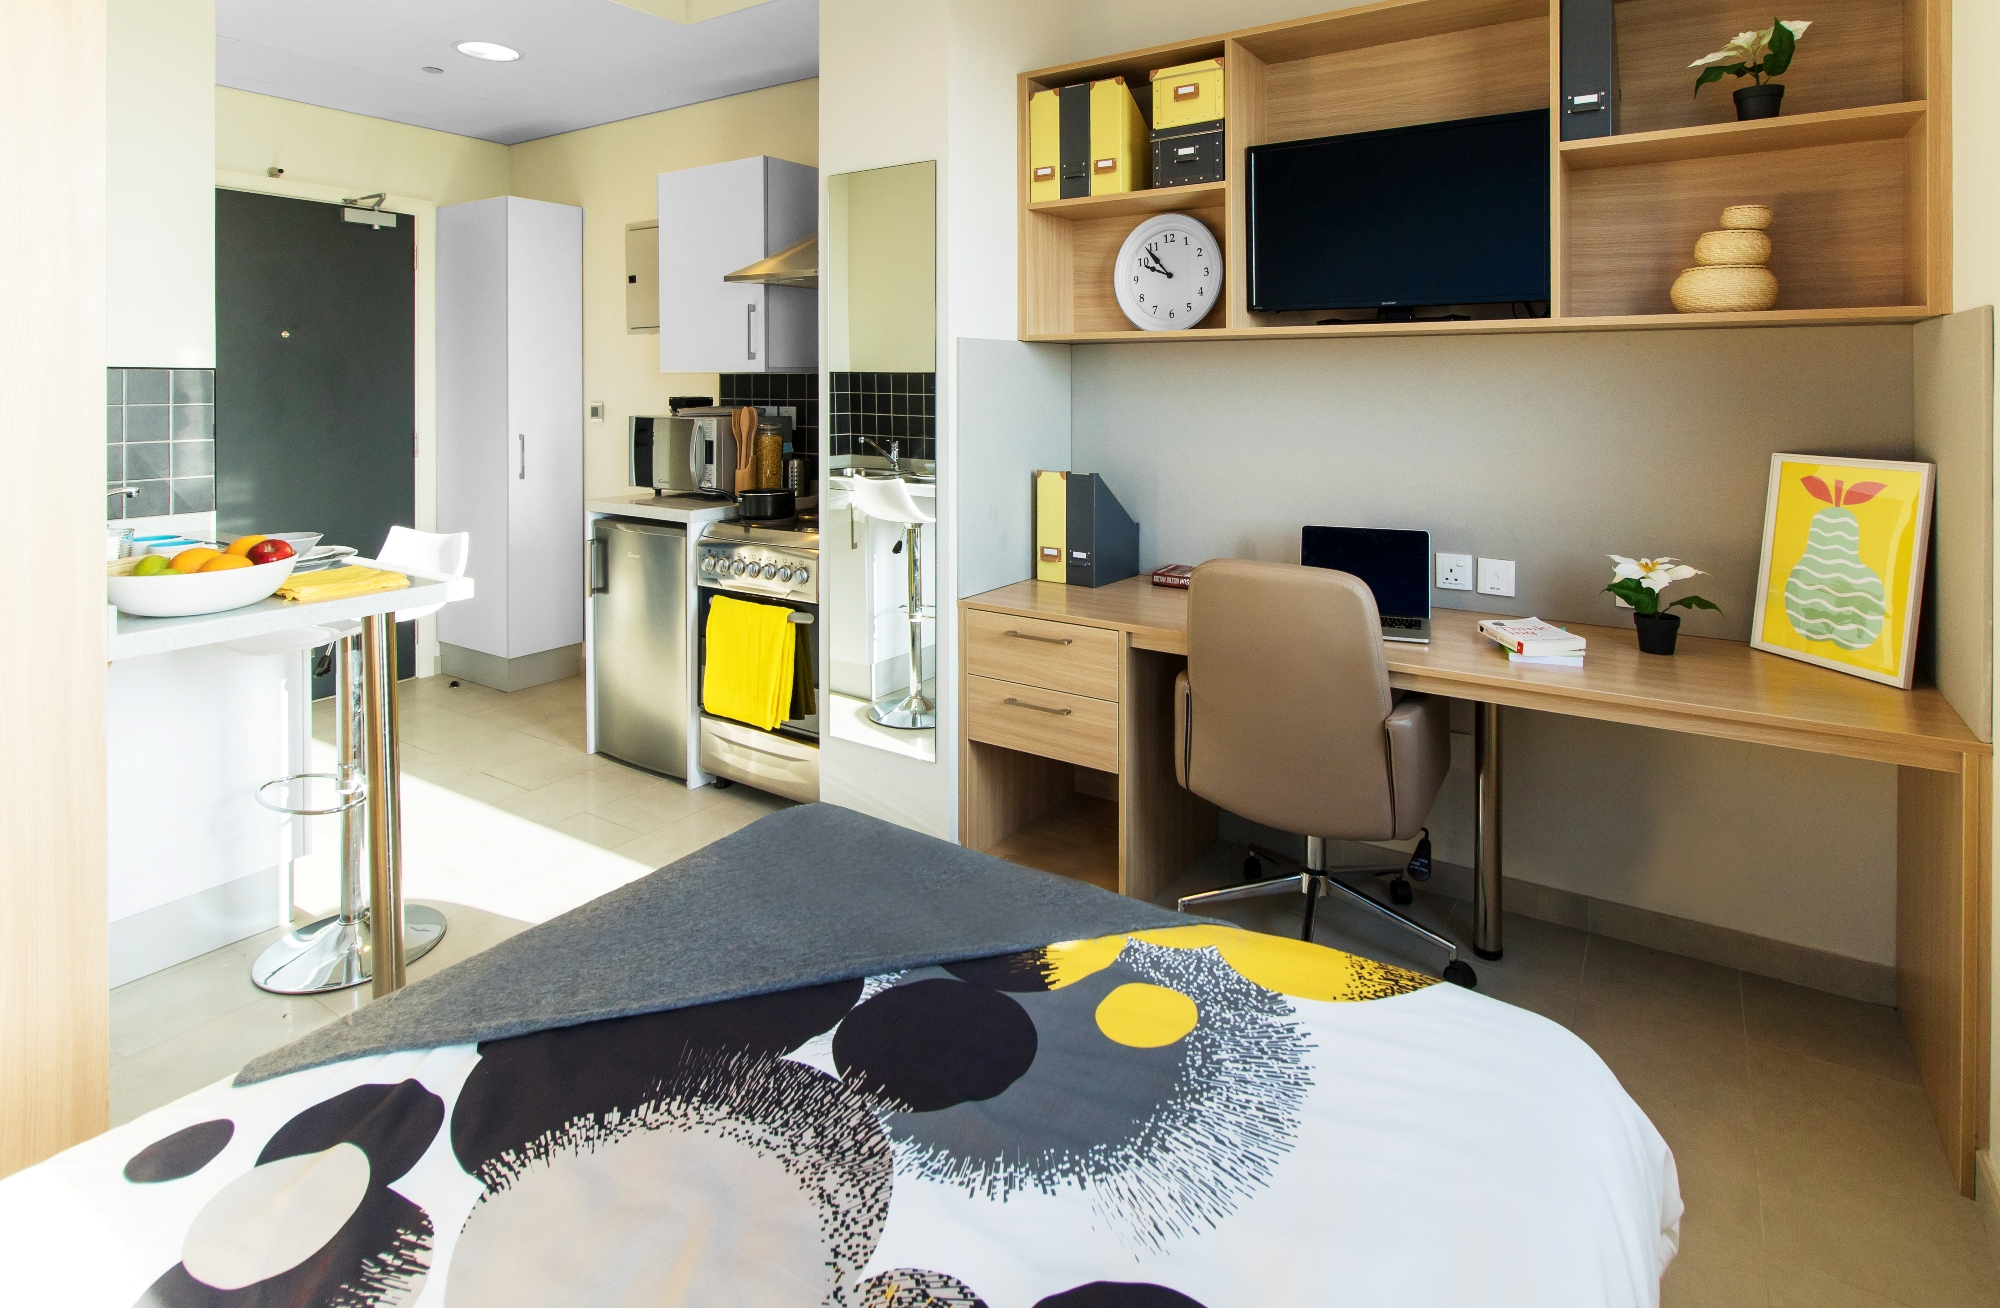 Searching for Accommodation in Dubai